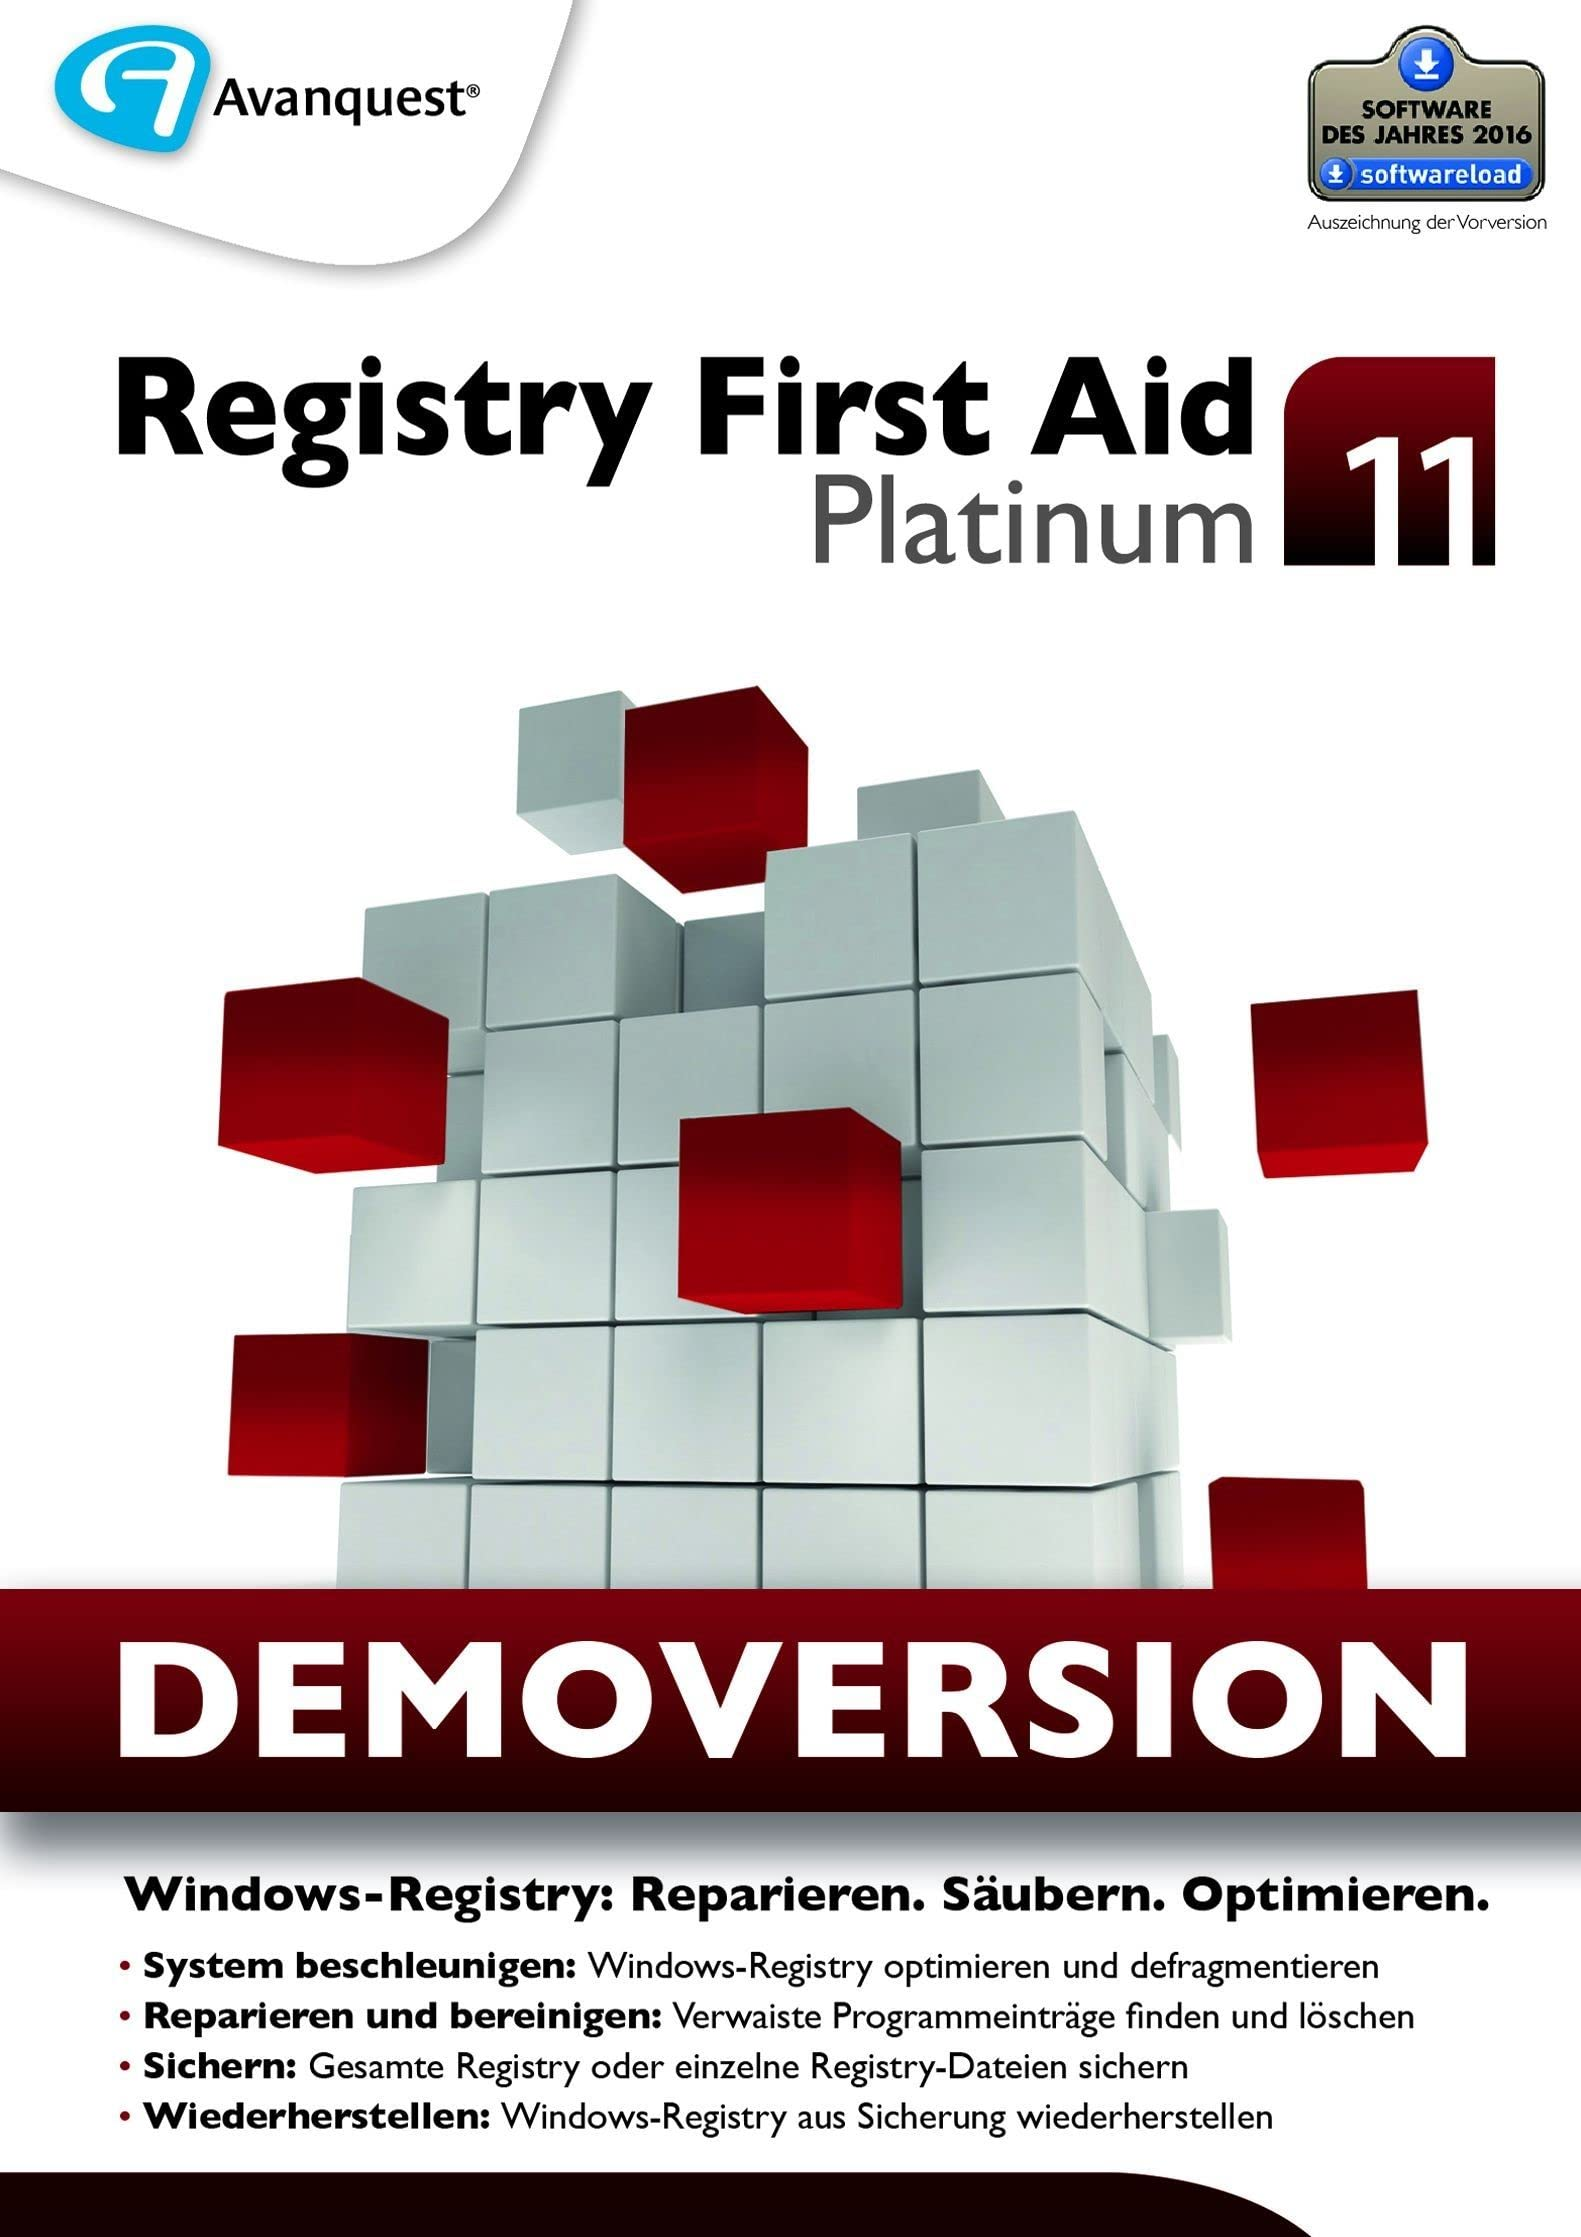 Registry First Aid 11 Platinum Kostenlose Demoversion Windows 10 8 7 Vista Xp Download Amazon De Software